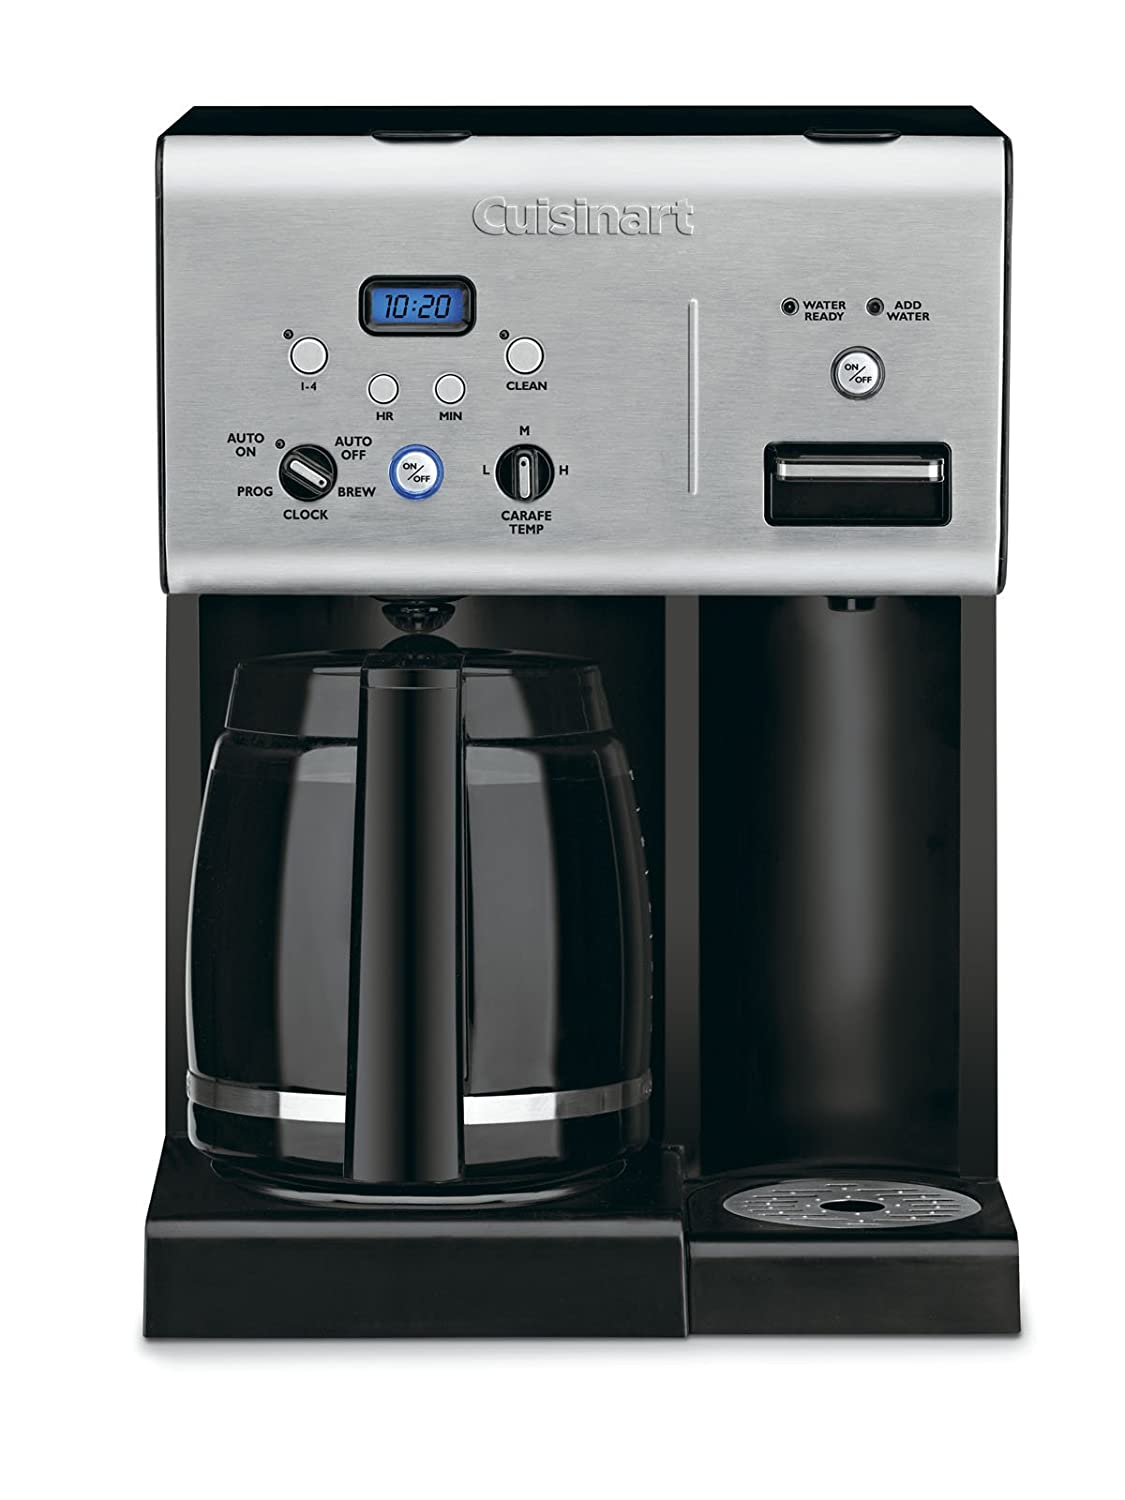 CuisinArt CHW-12: The 12 Cup Coffee Maker to Give You Various Brews